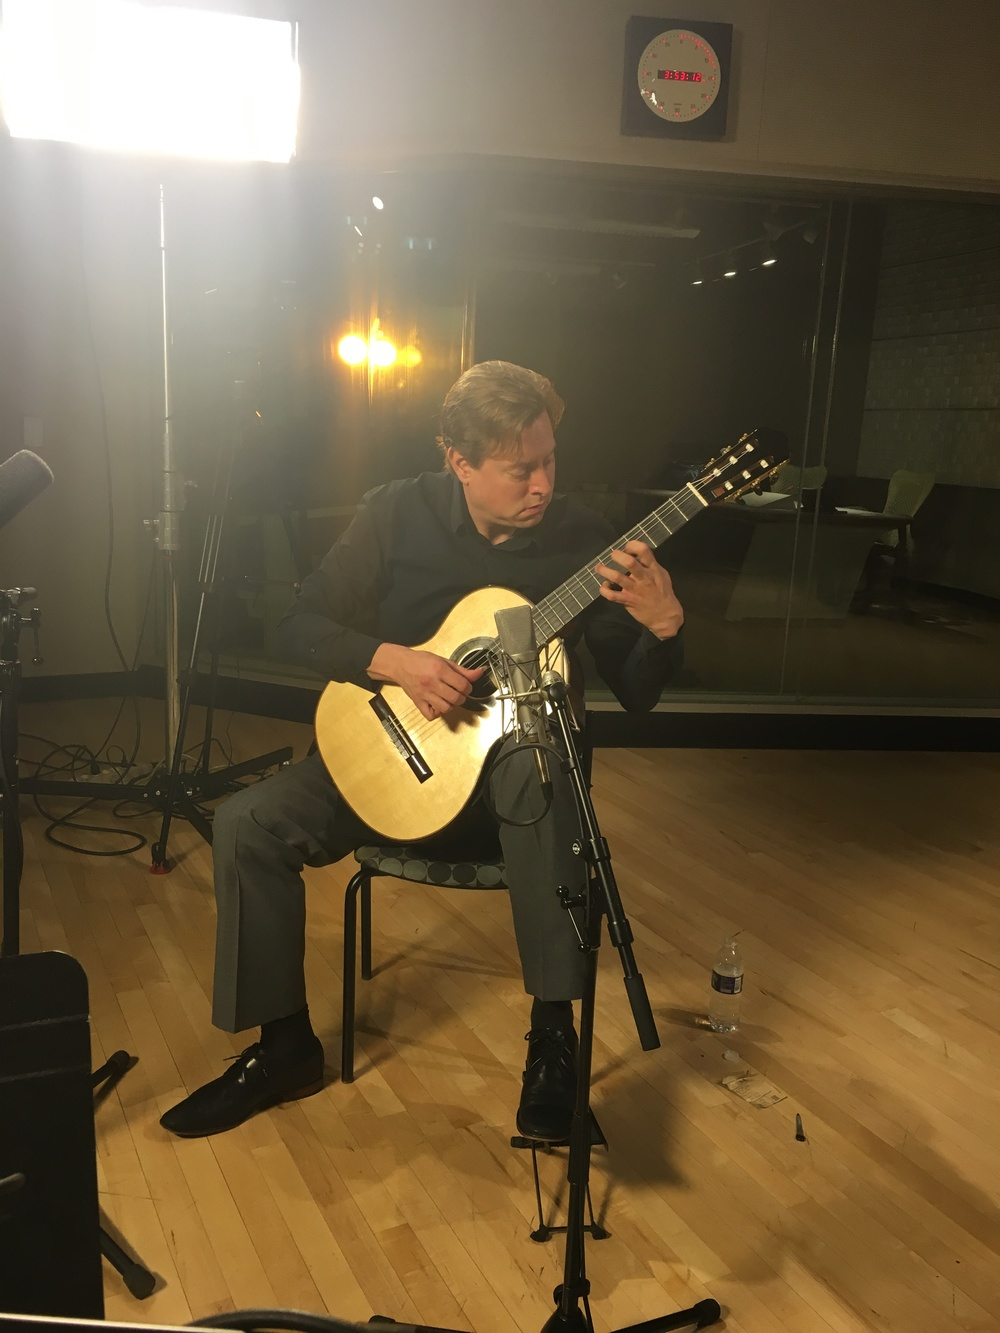 Jason Vieaux performs in the KeyBank Studio at the Idea Center in Playhouse Square.